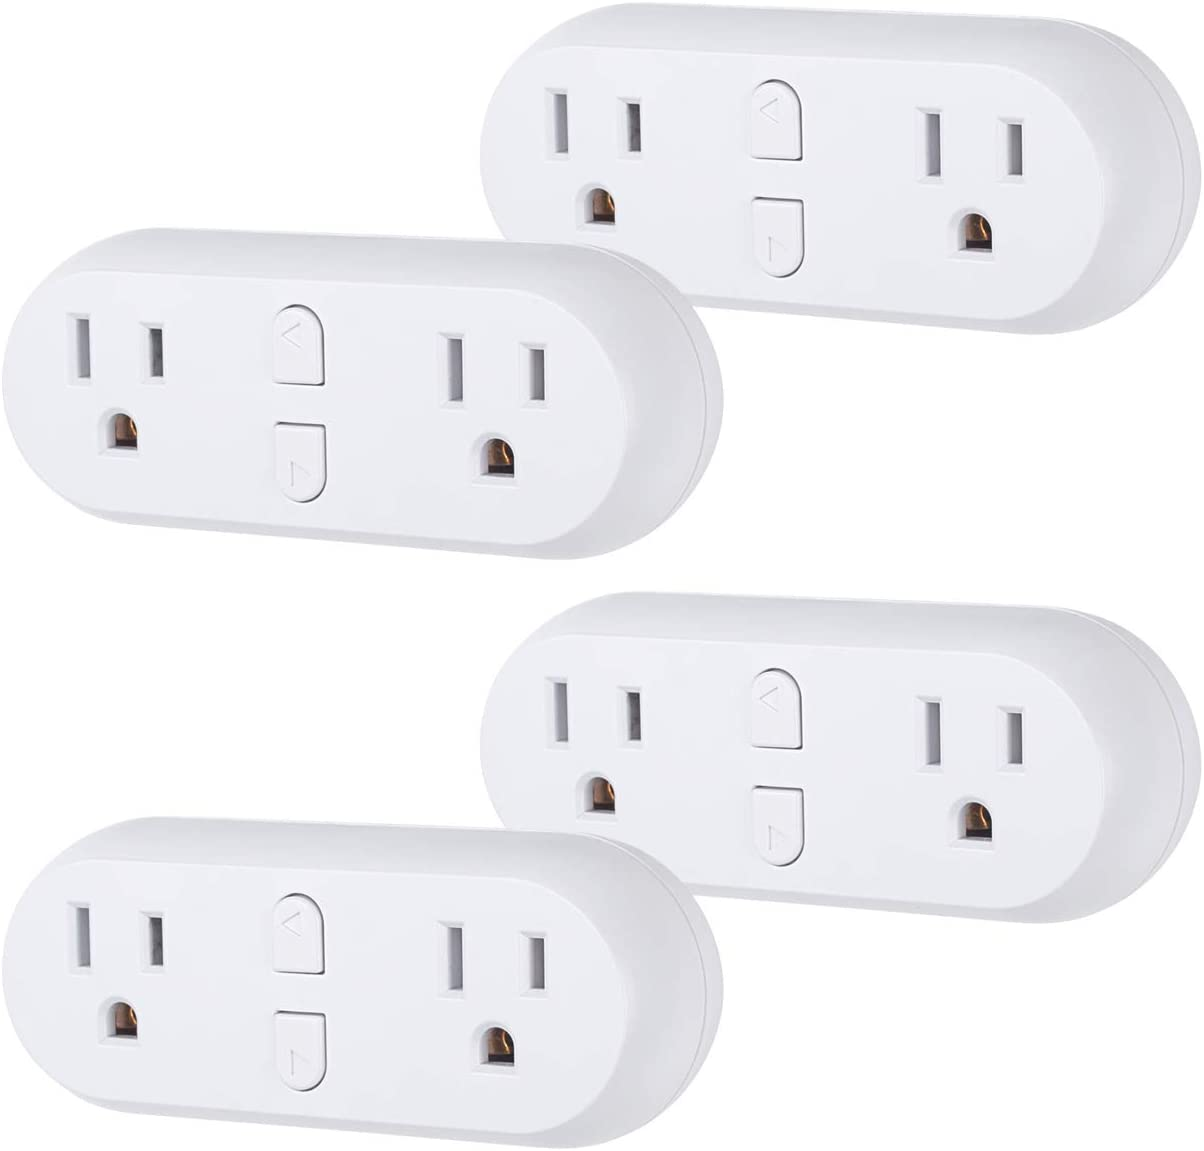 HBN Smart Plug 15A, WiFi Outlet Extender Dual Socket Plugs Works with Alexa, Google Home Assistant, Remote Control with Timer Function, No Hub Required, ETL Certified, 2.4G WiFi Only, 4 - Pack